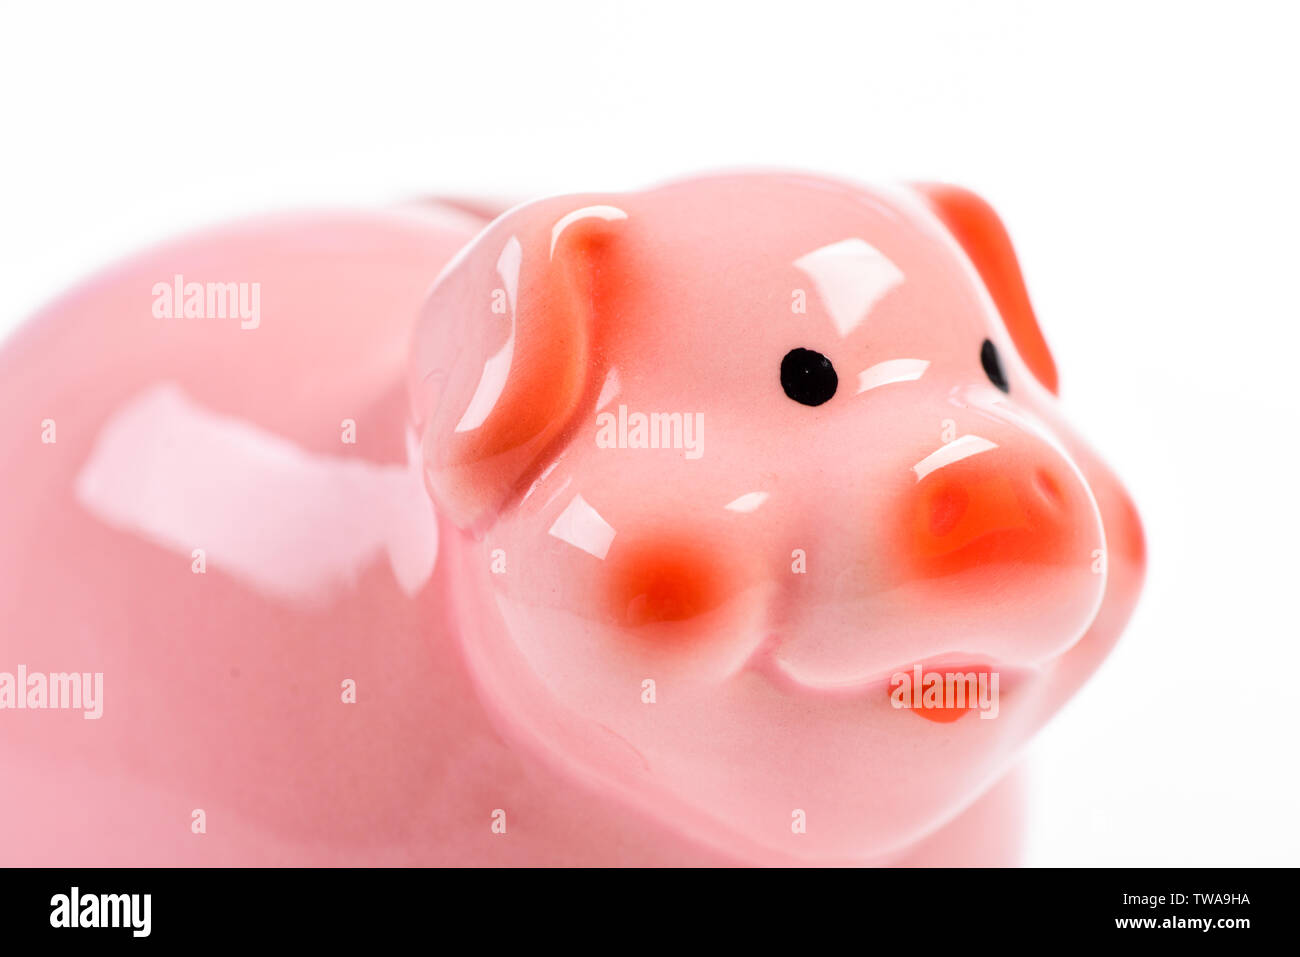 financial problem. income management. planning budget. piggy bank isolated on white. money saving. Banking and profit concept. Banking account. Just making money. - Stock Image